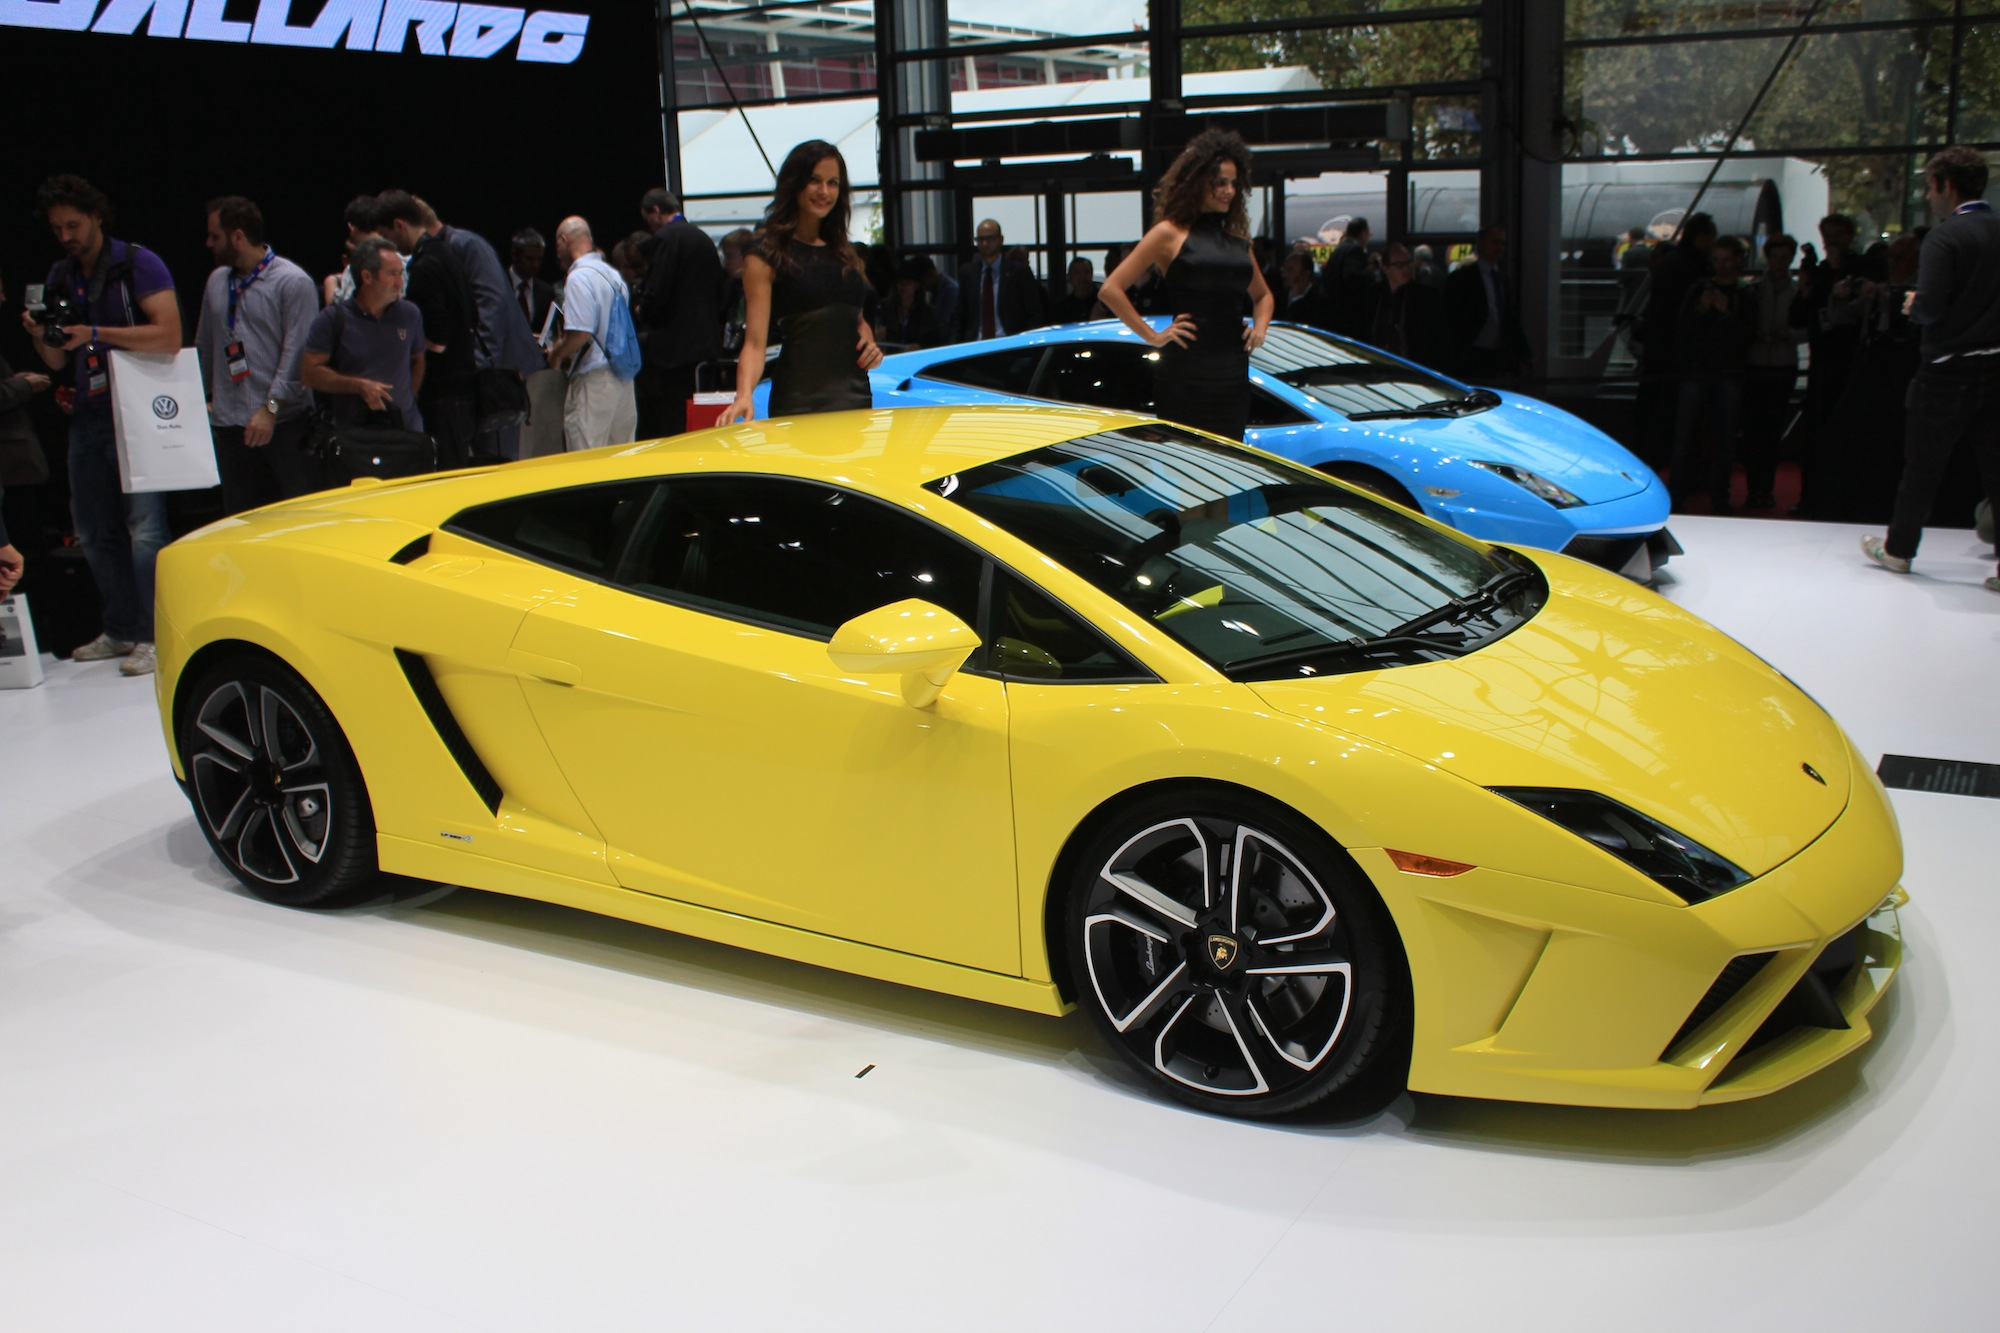 Lamborghini To Close Gallardo Run With Minimalist Manual Model